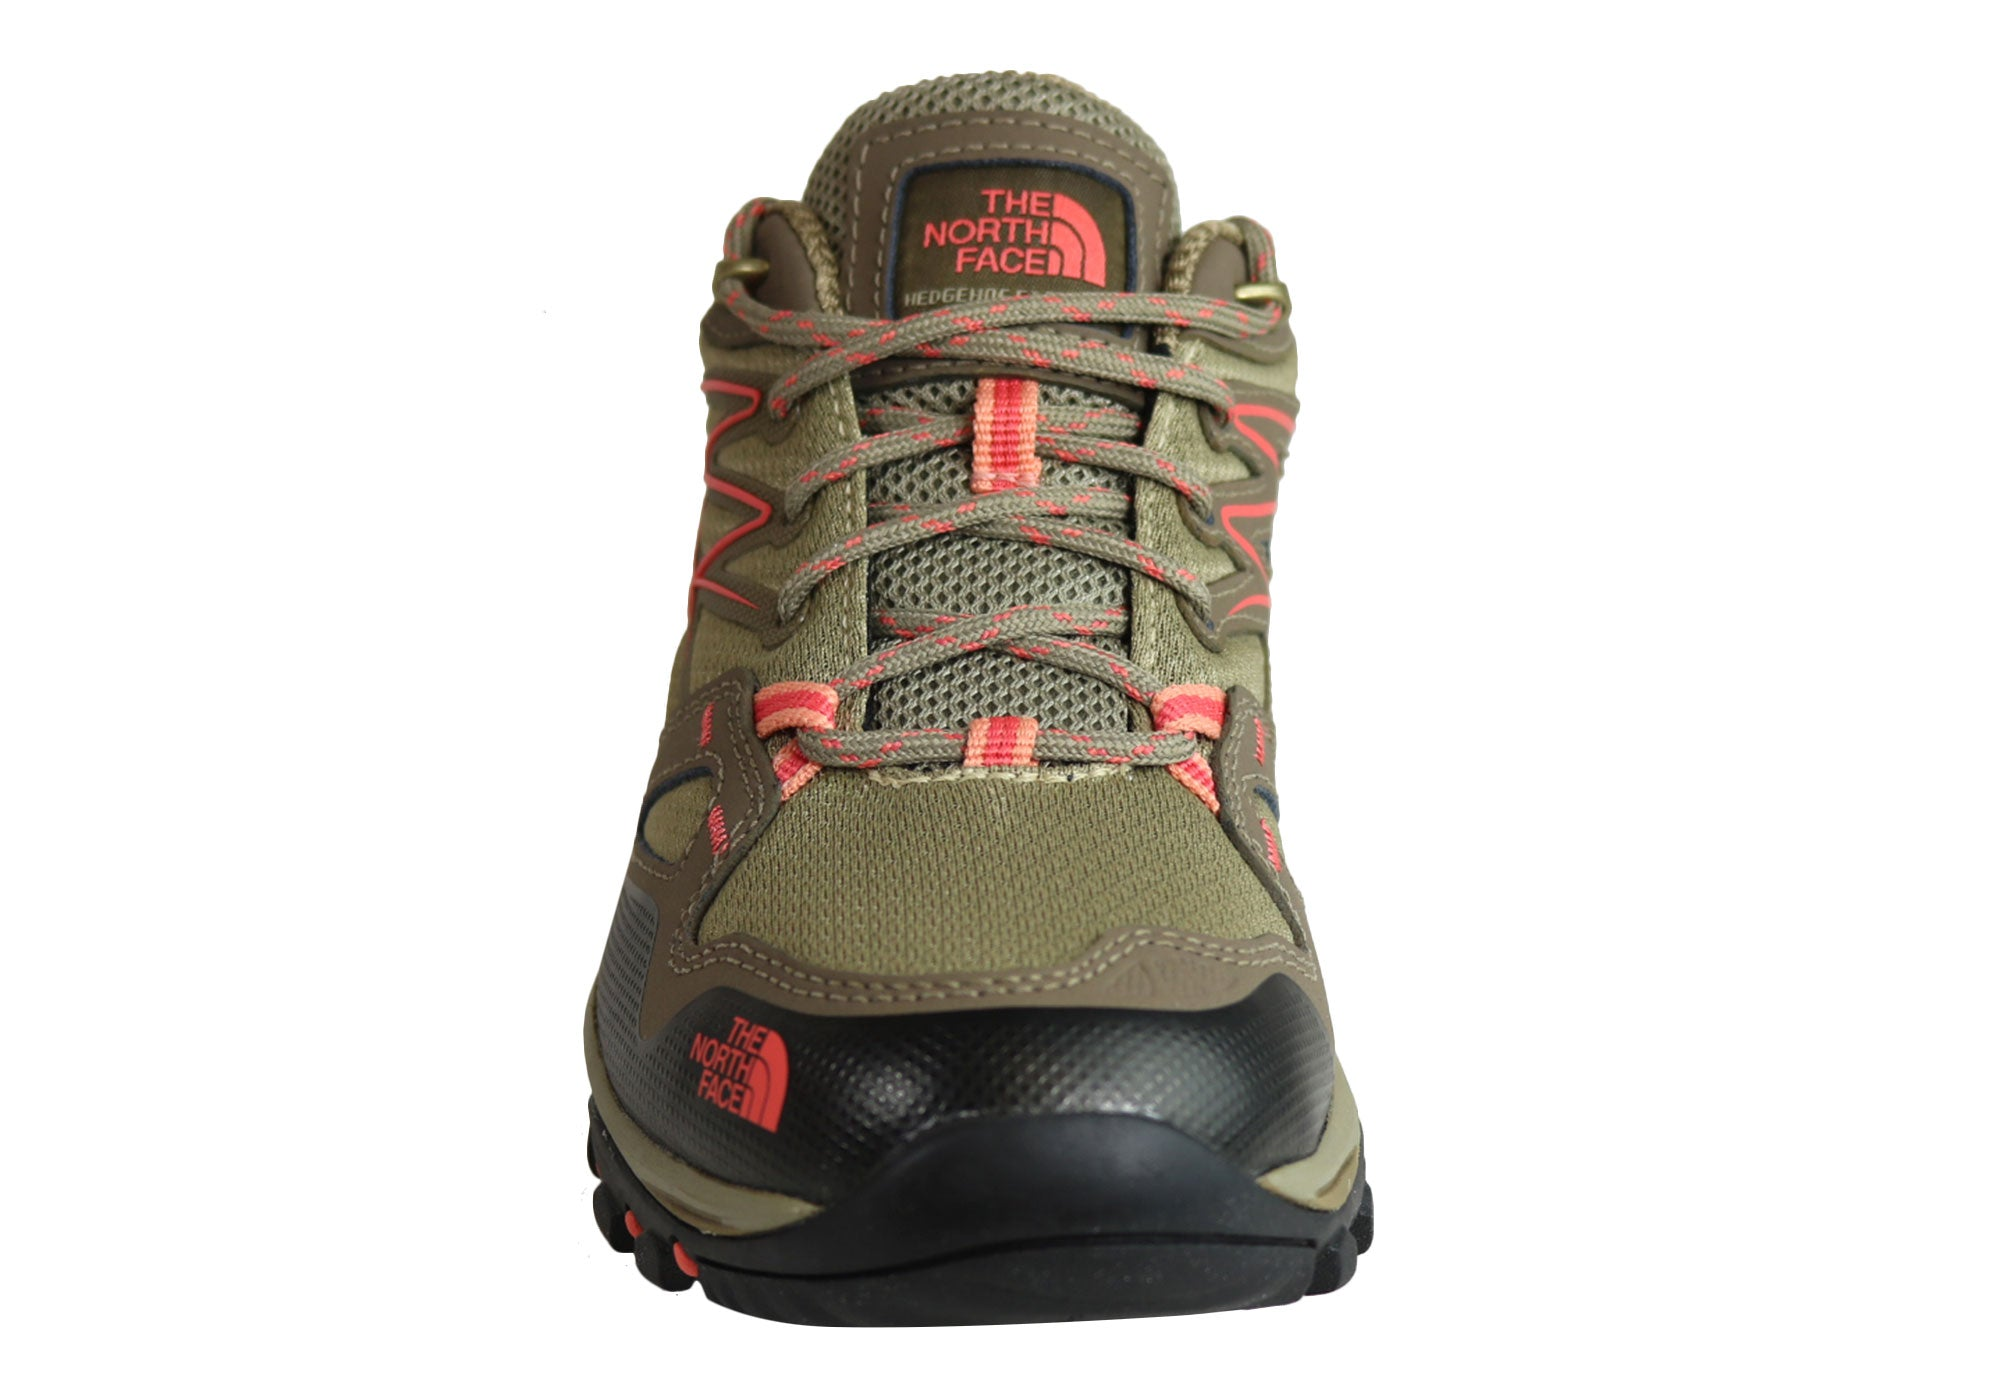 4a8184b20 The North Face Womens Comfortable Hedgehog Fastpack GTX Hiking Shoes ...